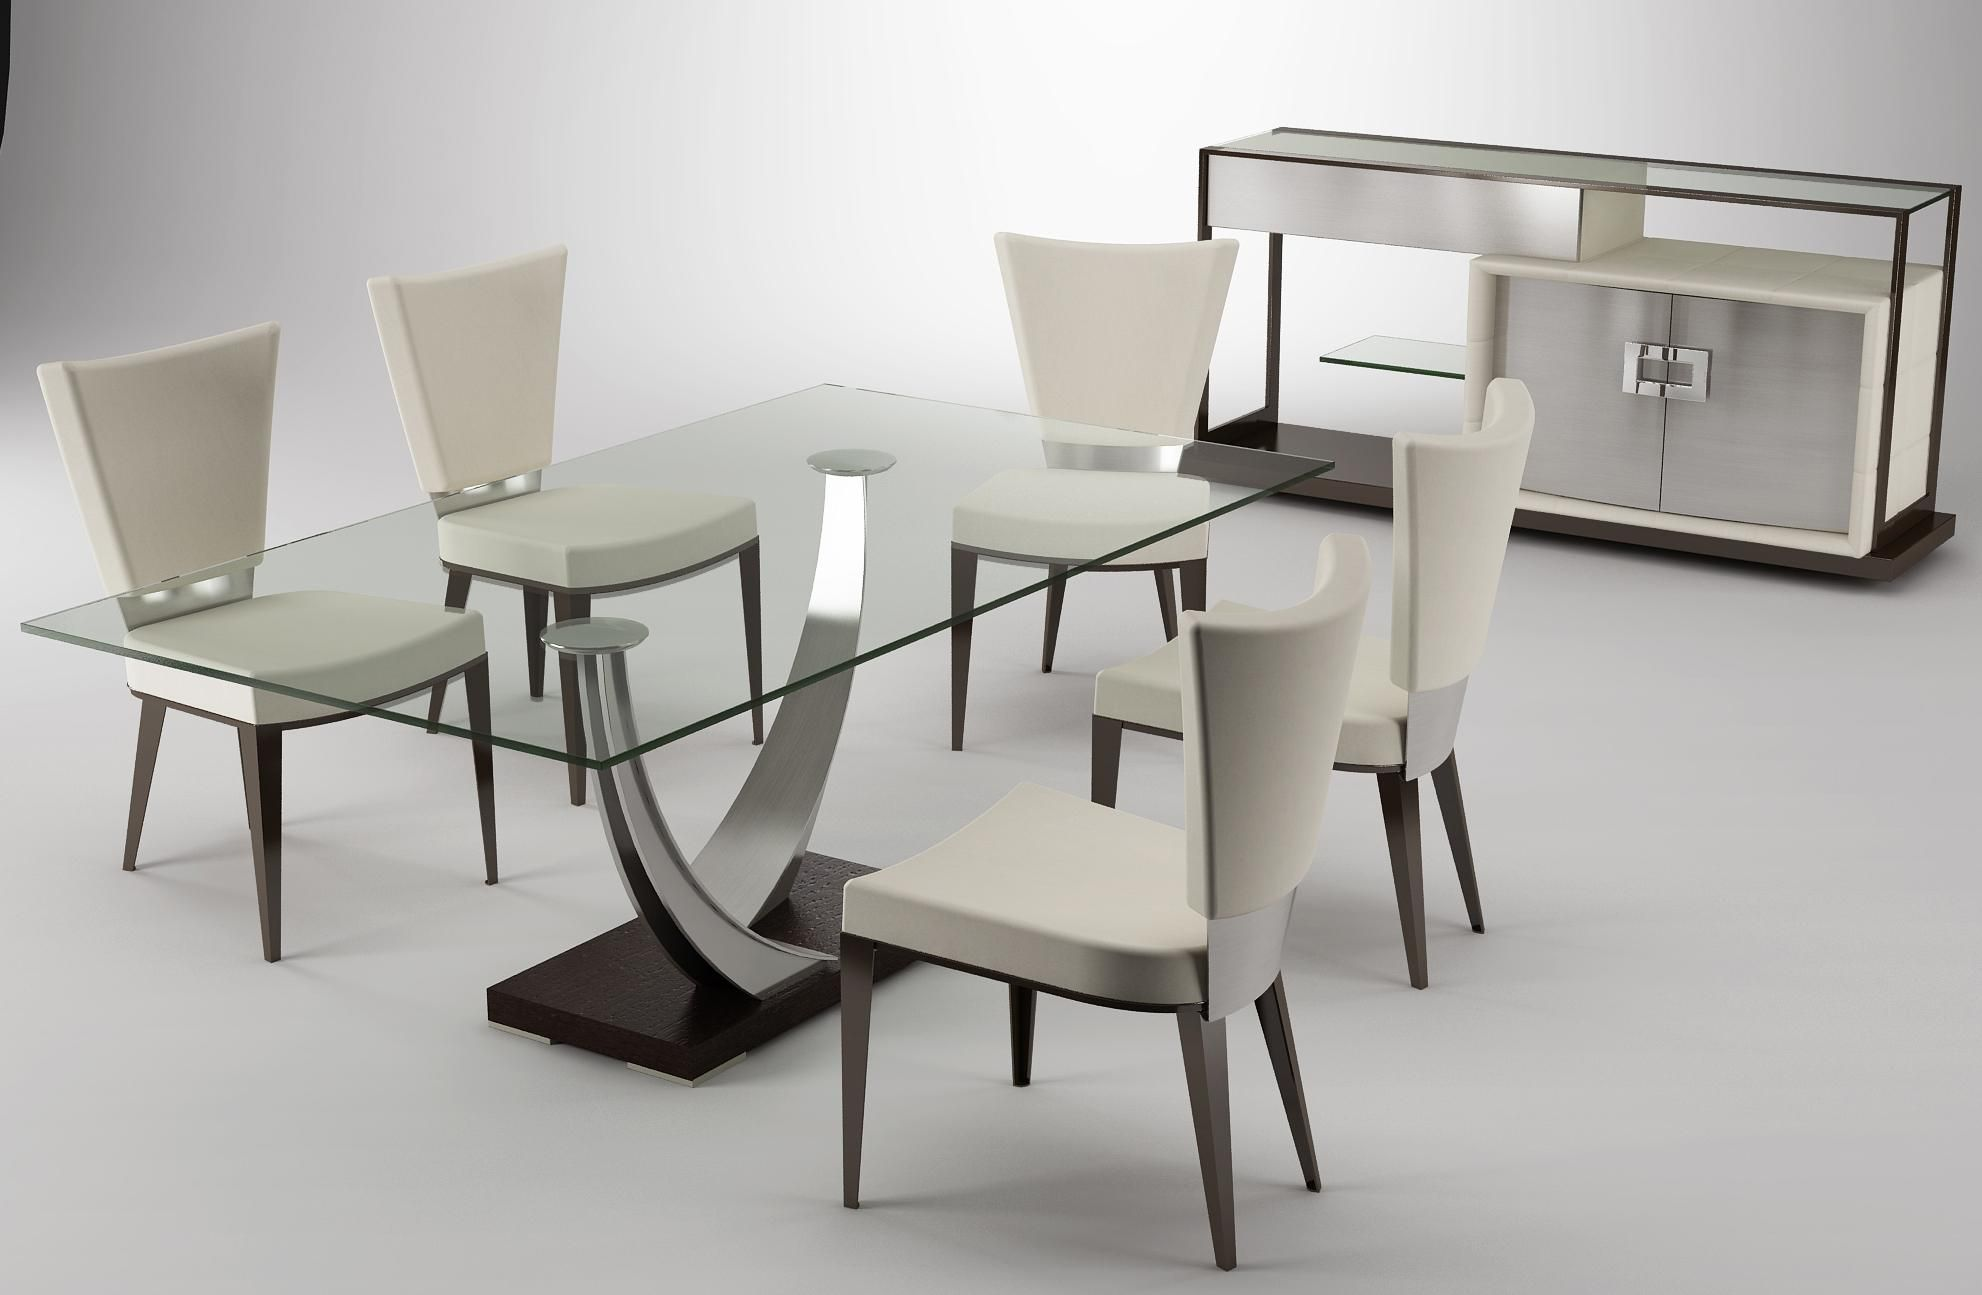 Amazing Modern Stylish Dining Room Table Set Designs Elite Tangent - Modern dining room table sets